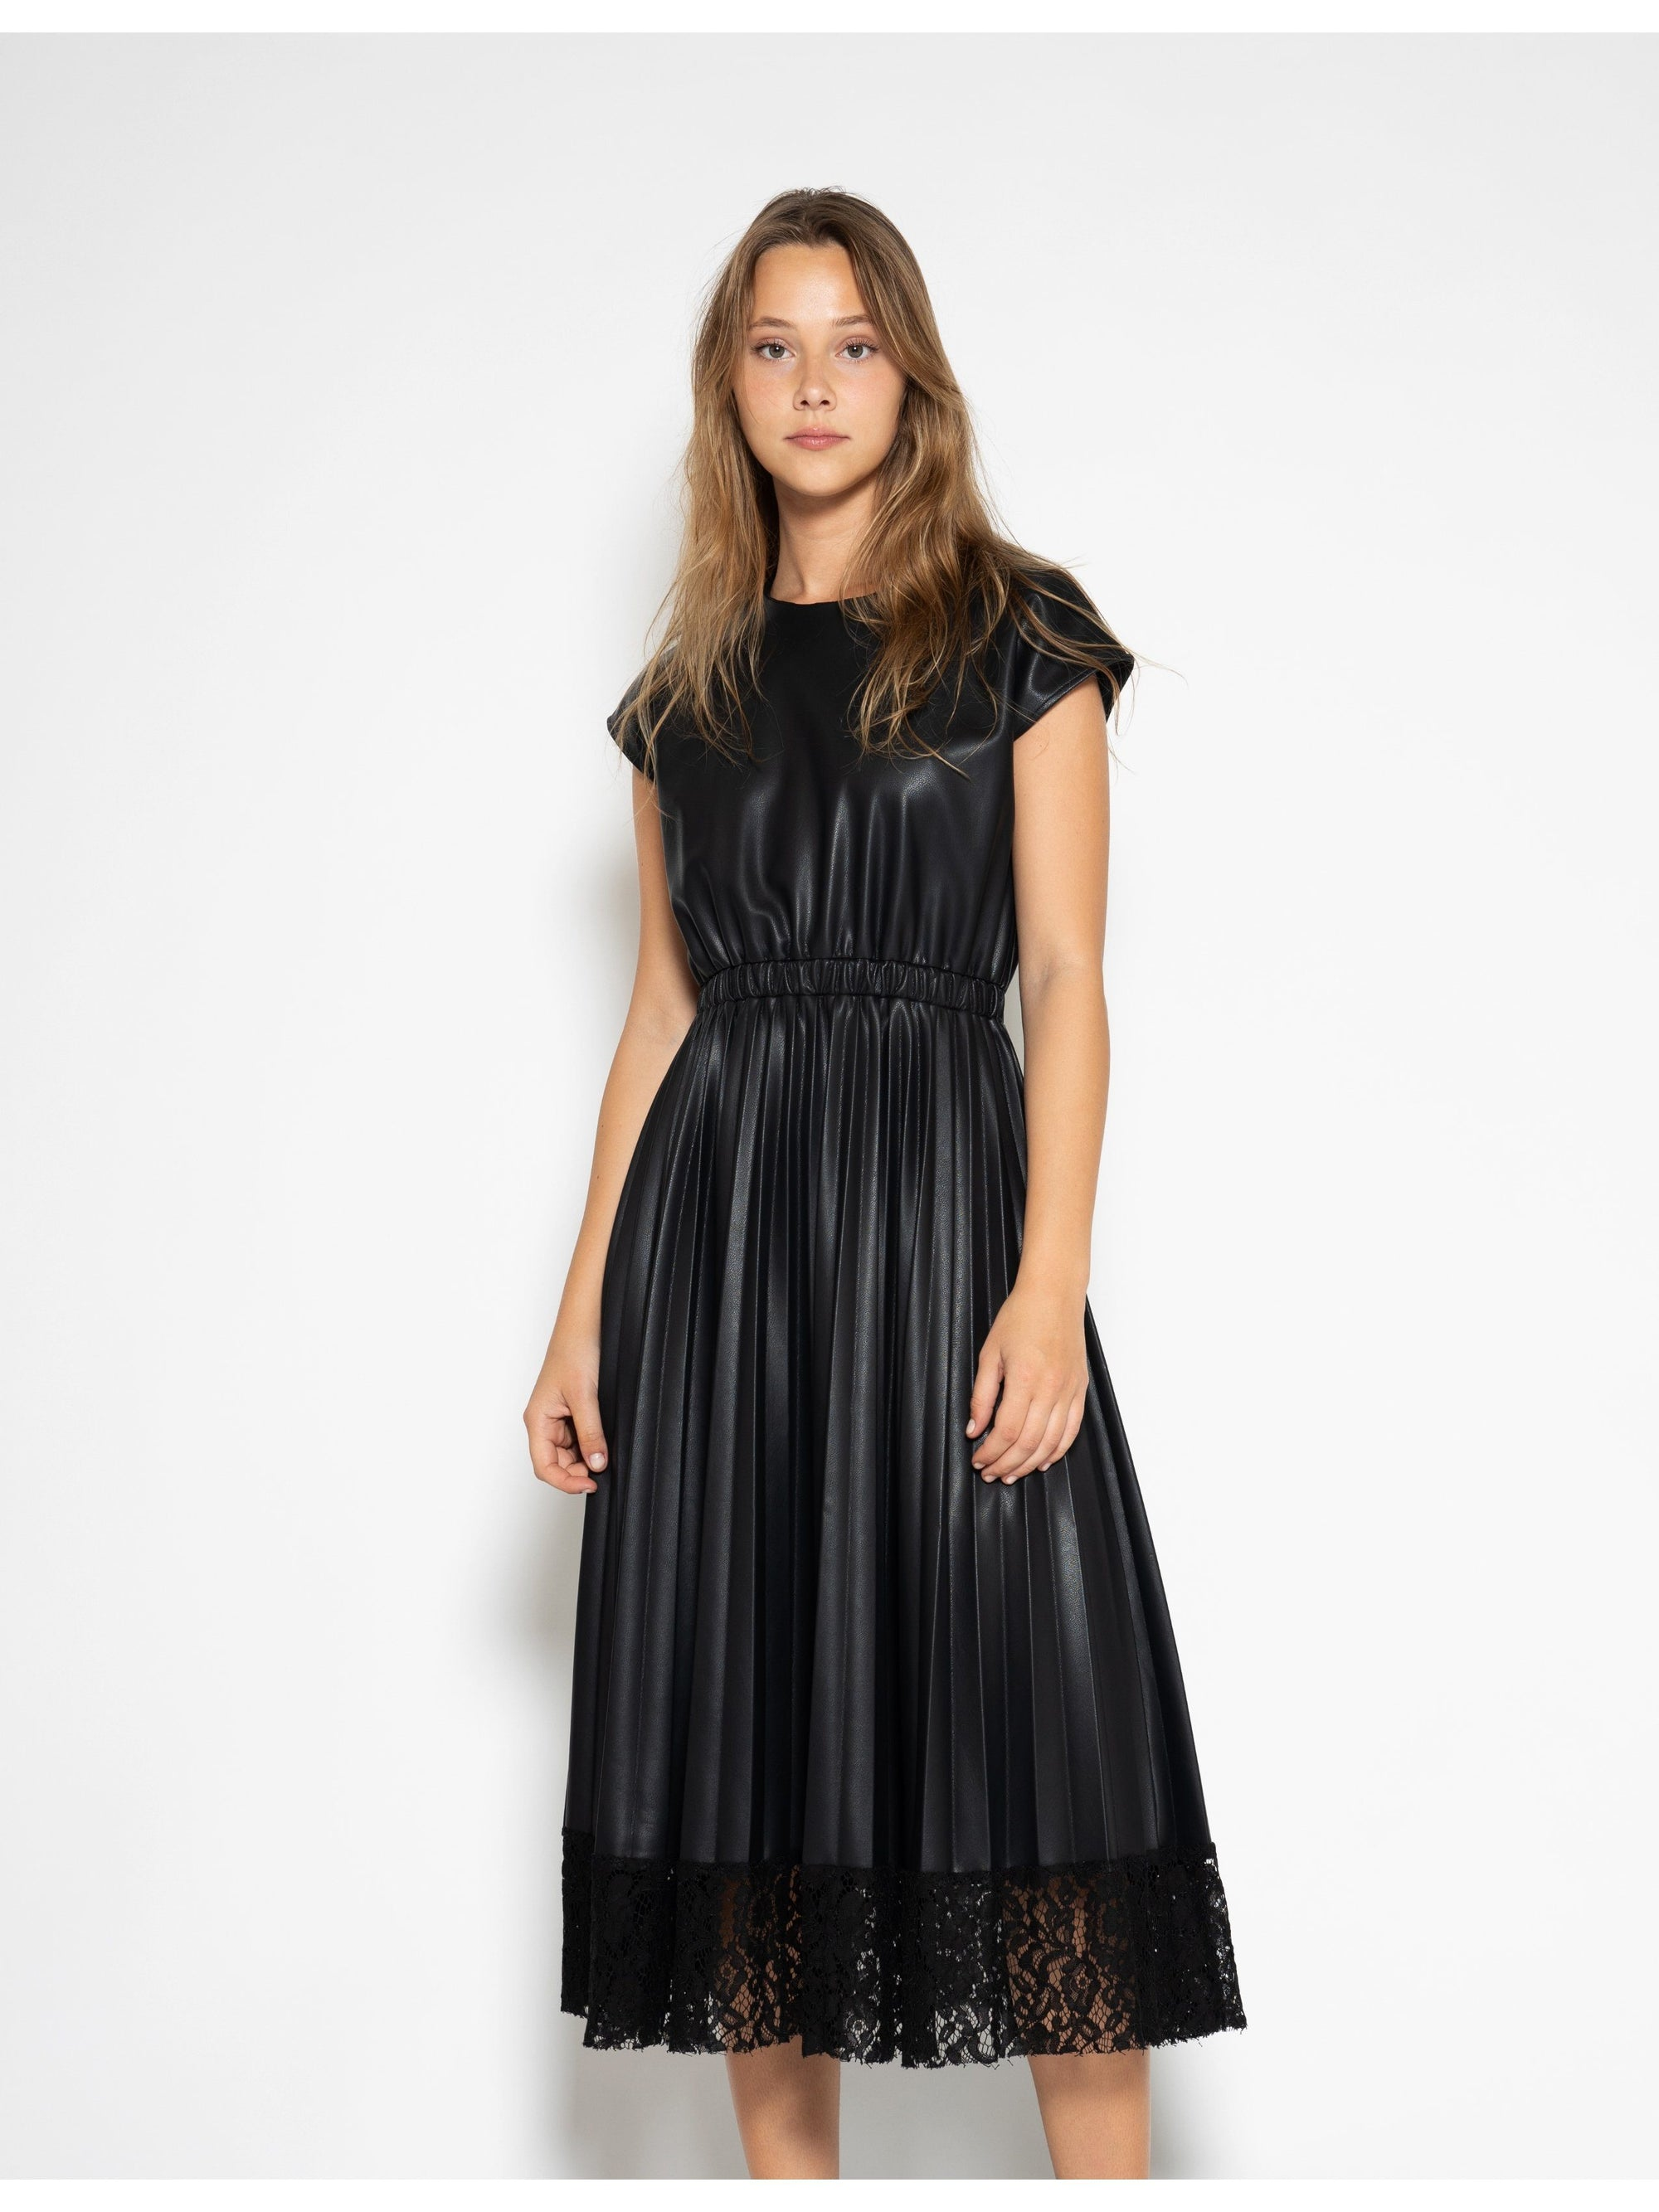 Pleated Pleather Dress with Lace Hem DRESS Gracia Fashion BLACK S